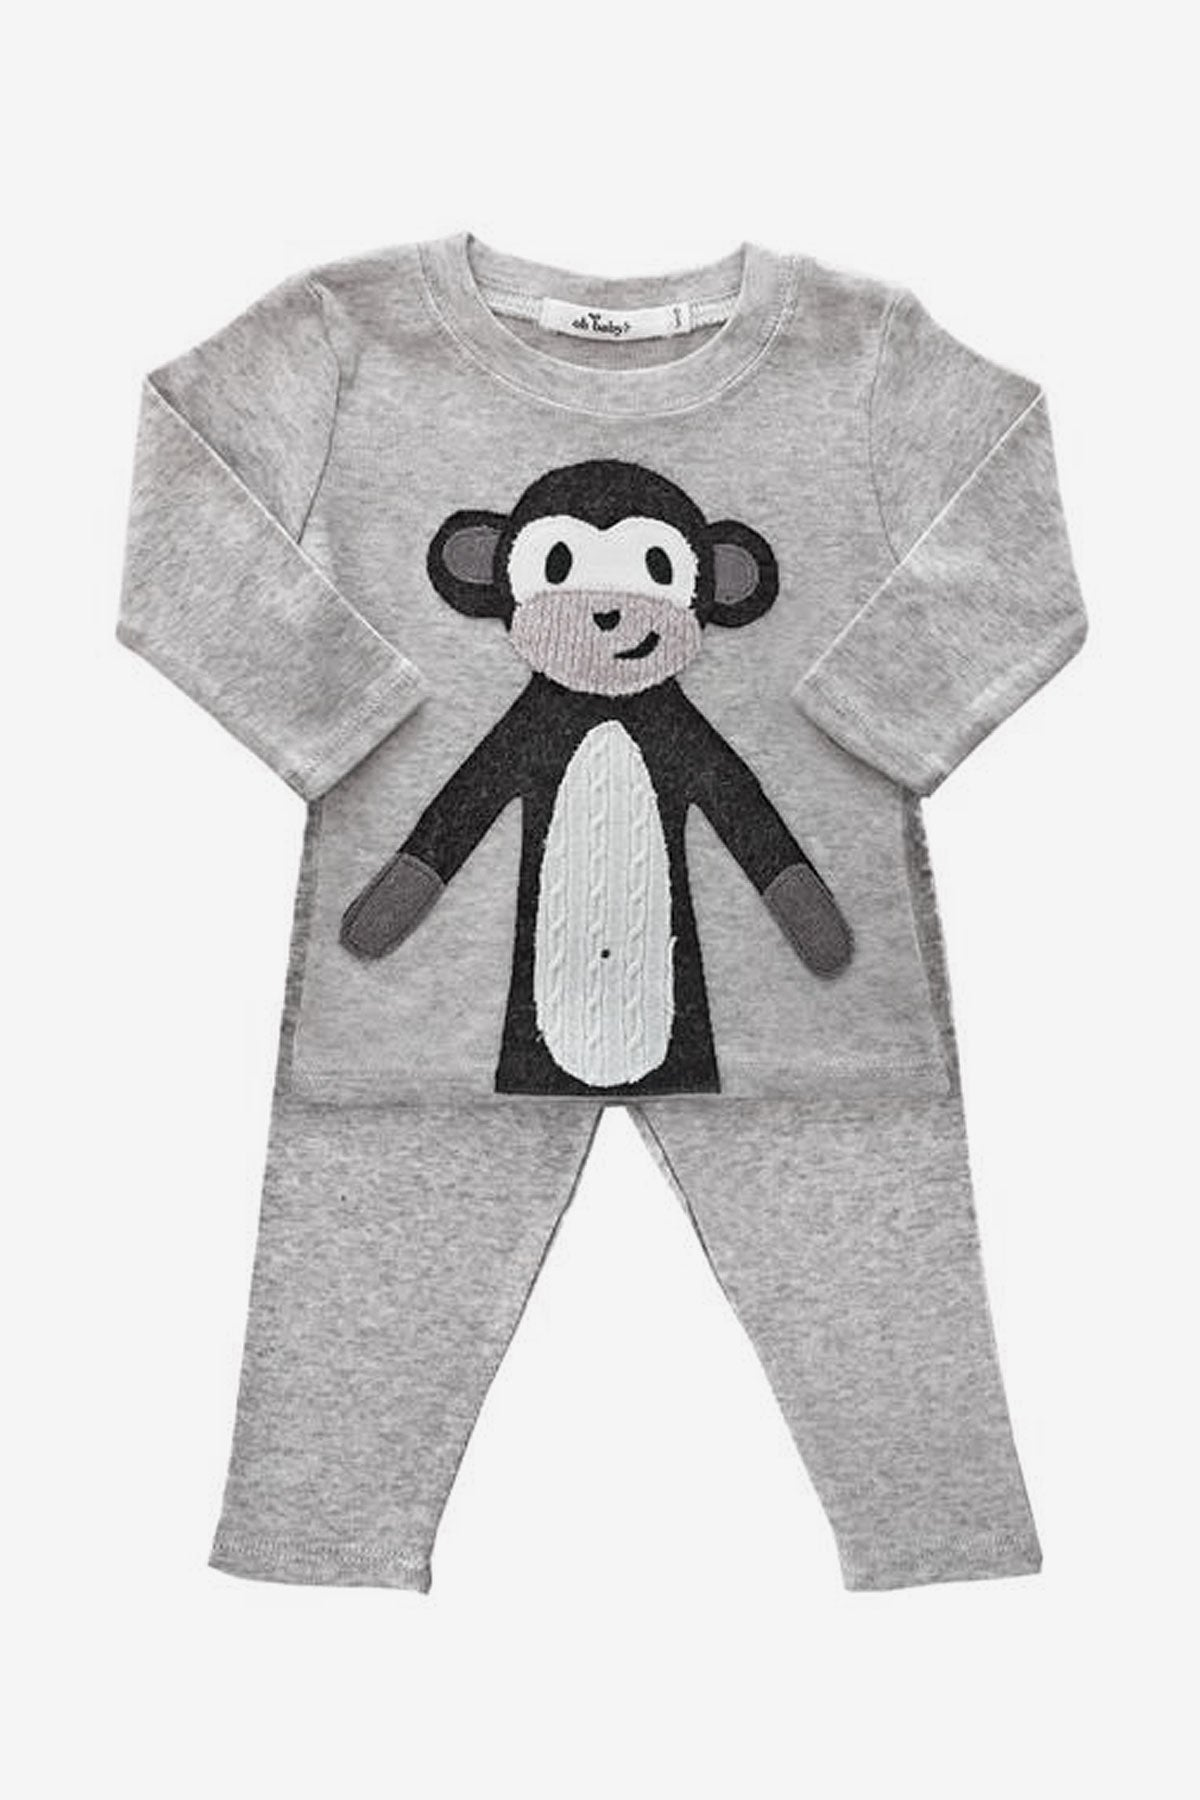 Oh Baby! Monkey Set